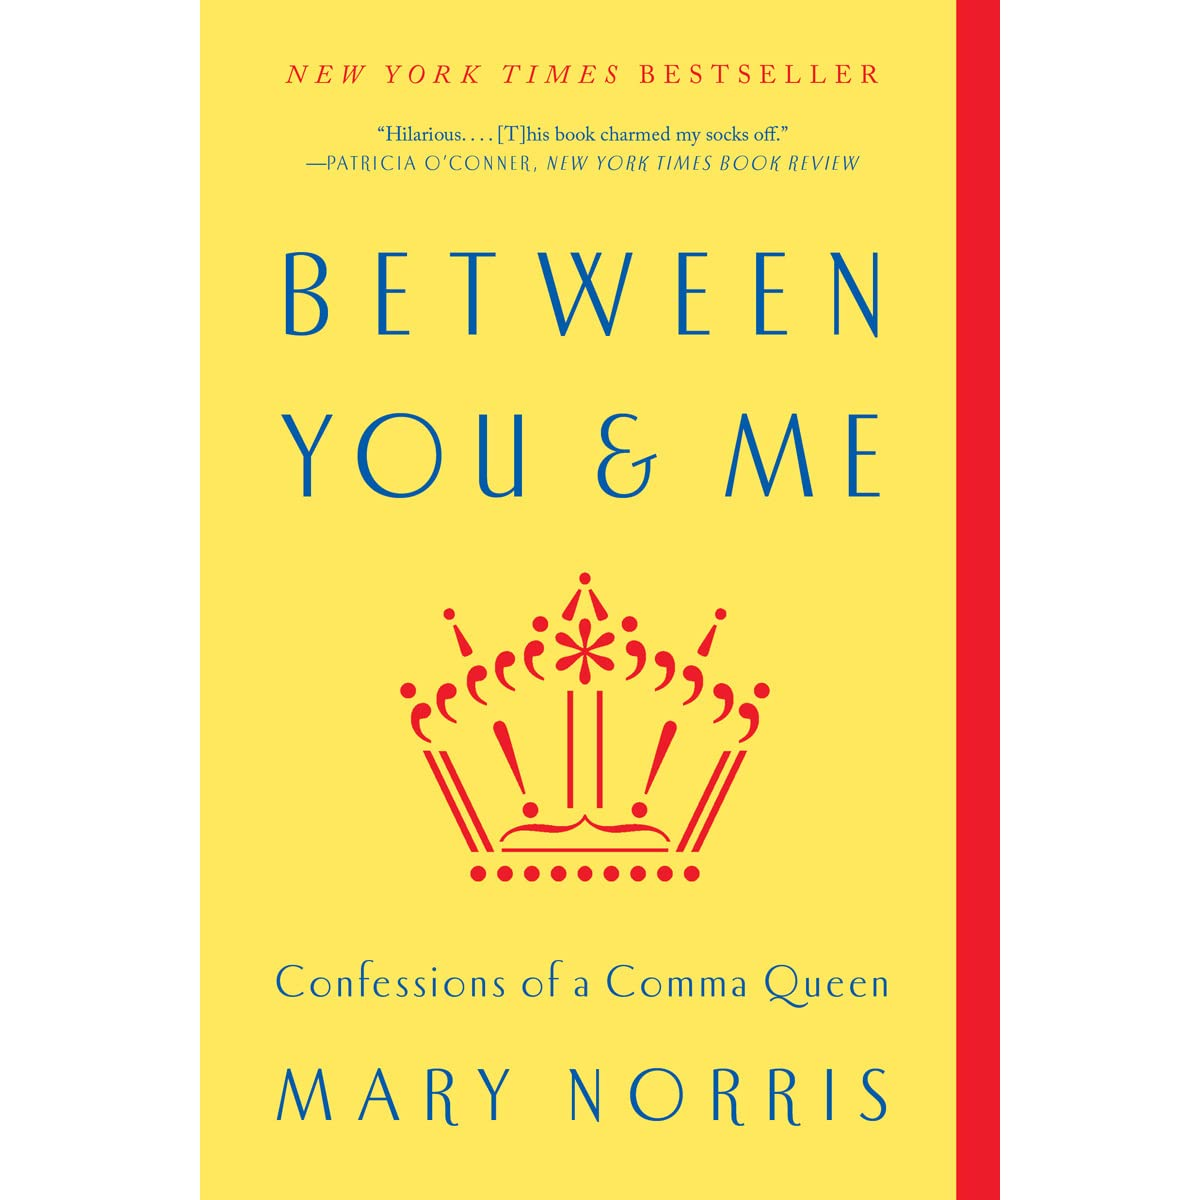 Between You Me Confessions Of A Comma Queen By Mary Norris